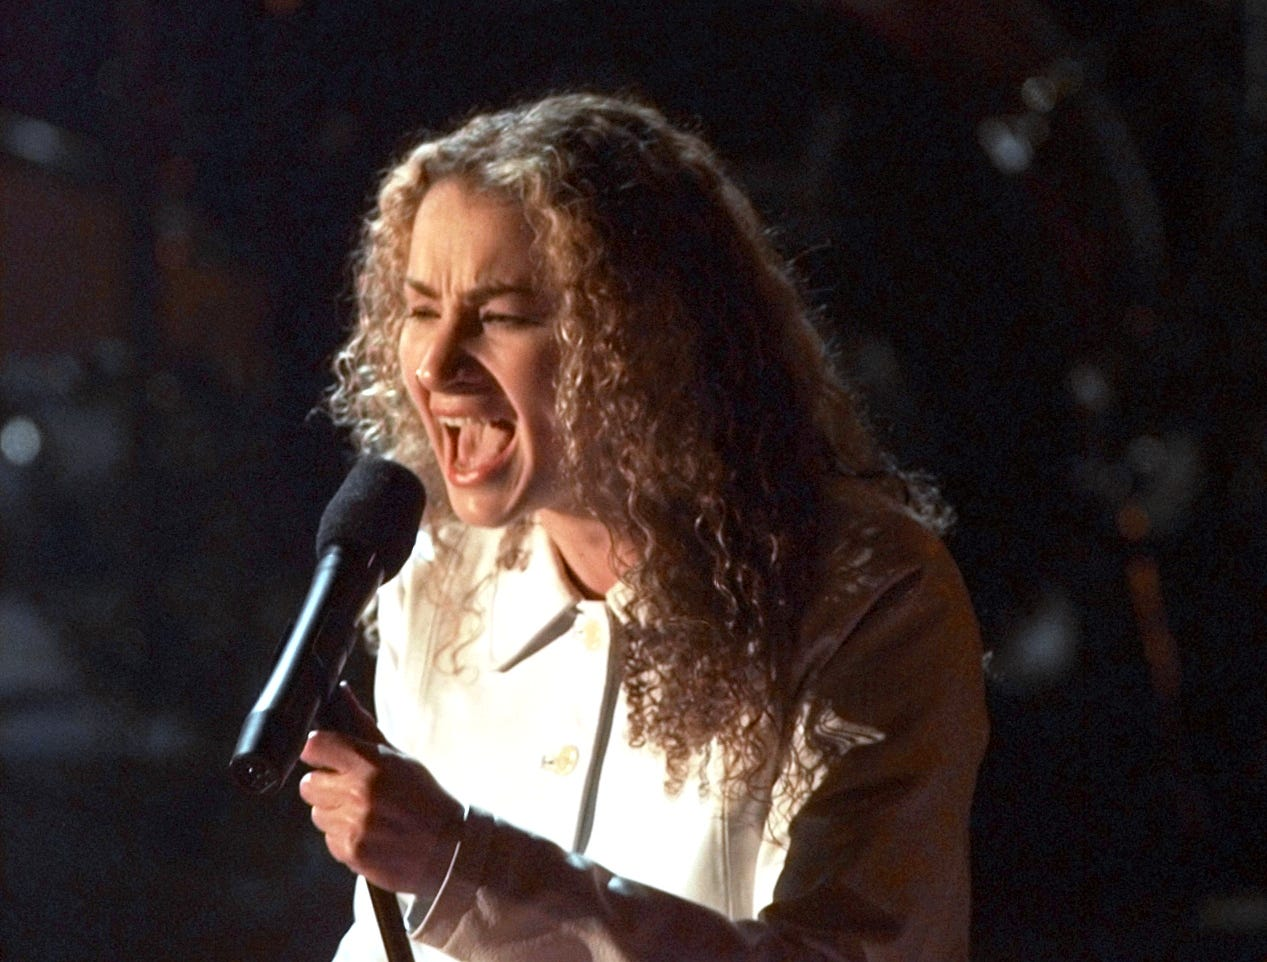 """Joan Osborne asked the enduring question """"What if God was one of us?"""" in her 1995 hit """"One of Us,"""" which also earned three Grammy nominations."""